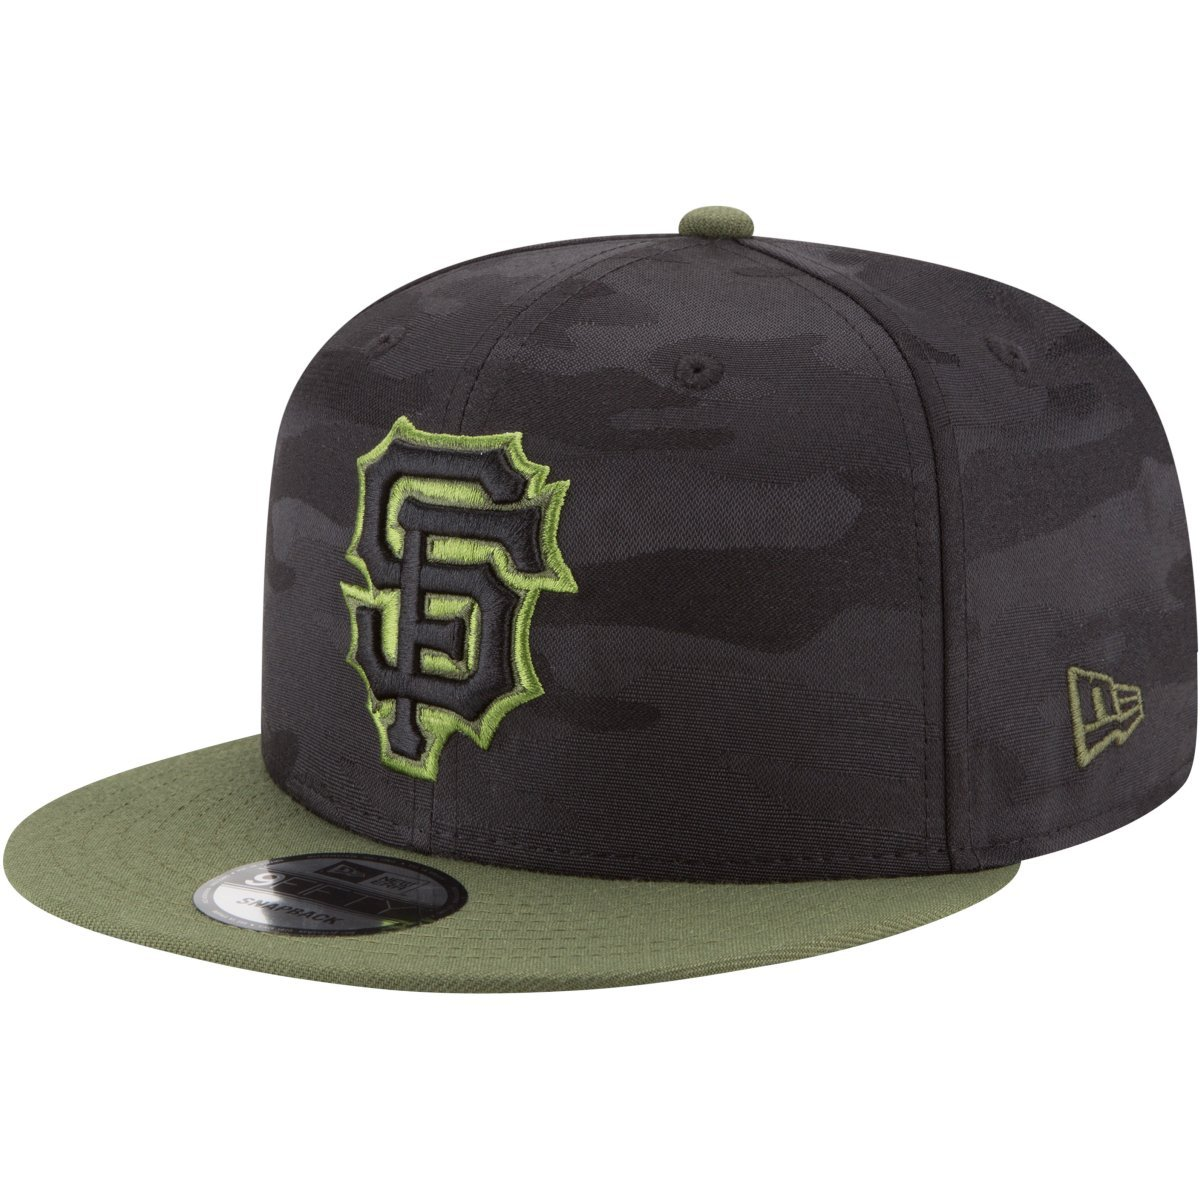 71a78d3140f Amazon.com  New Era San Francisco Giants 2018 Memorial Day 9FIFTY  Adjustable Snapback Hat  Clothing